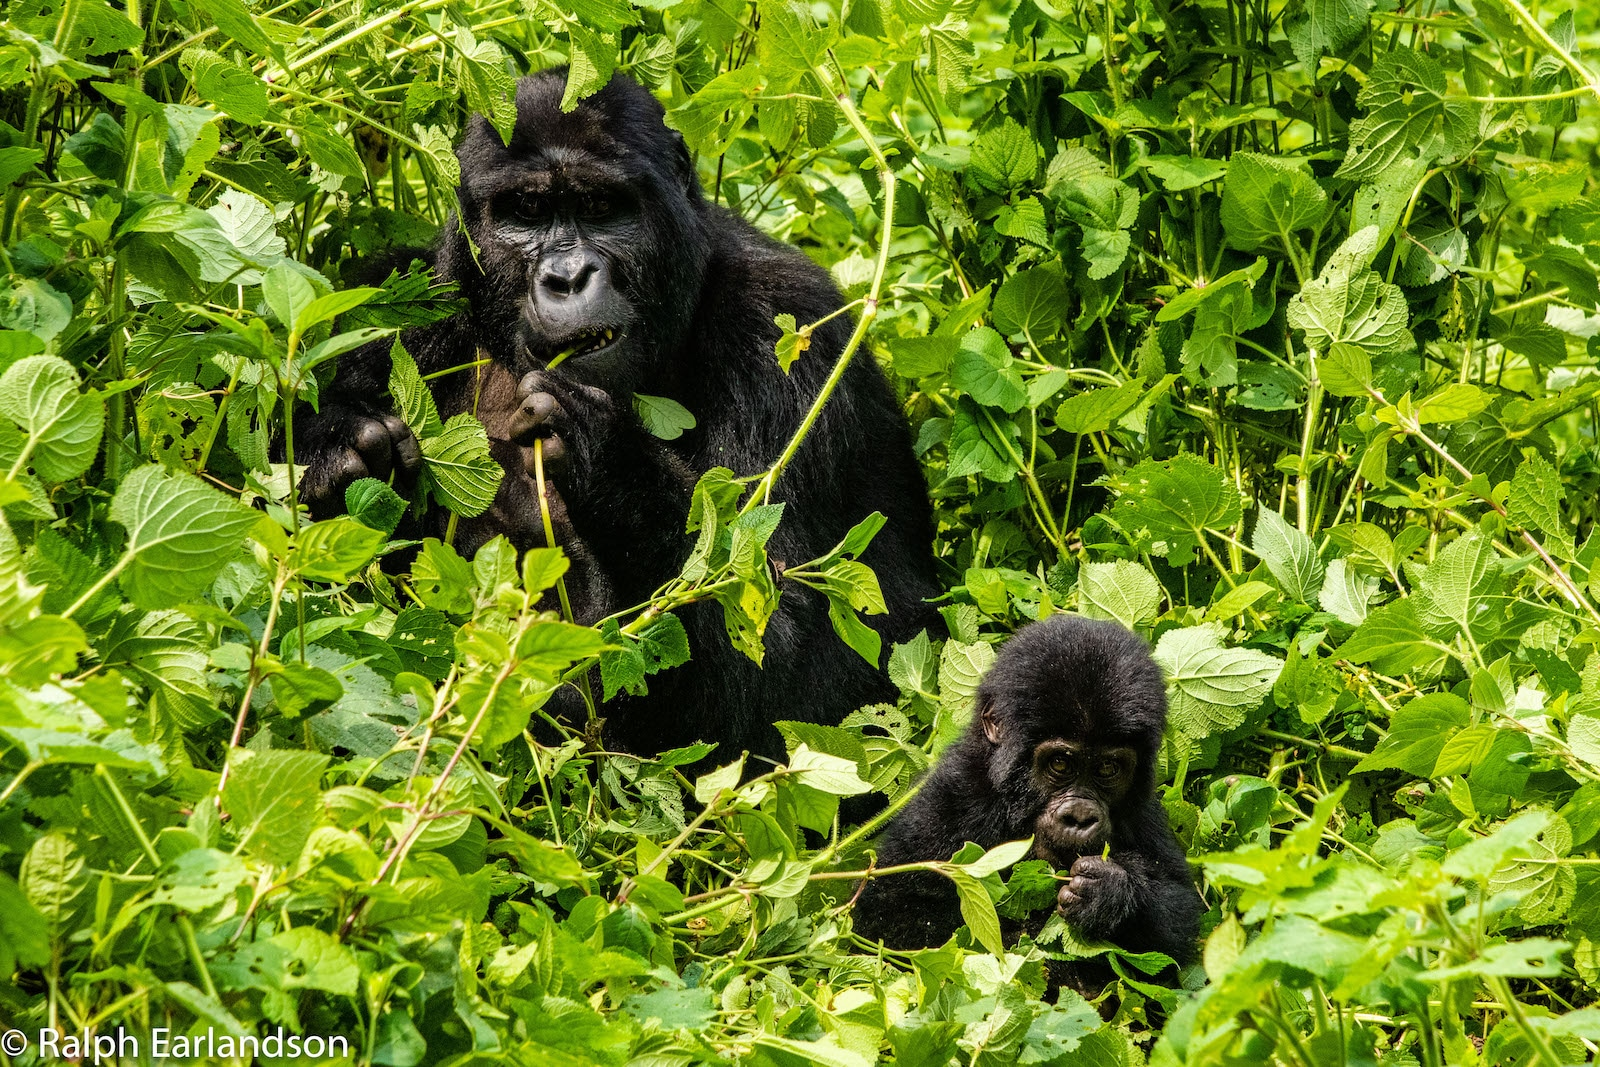 Bwindi Impenetrable National Park, Uganda